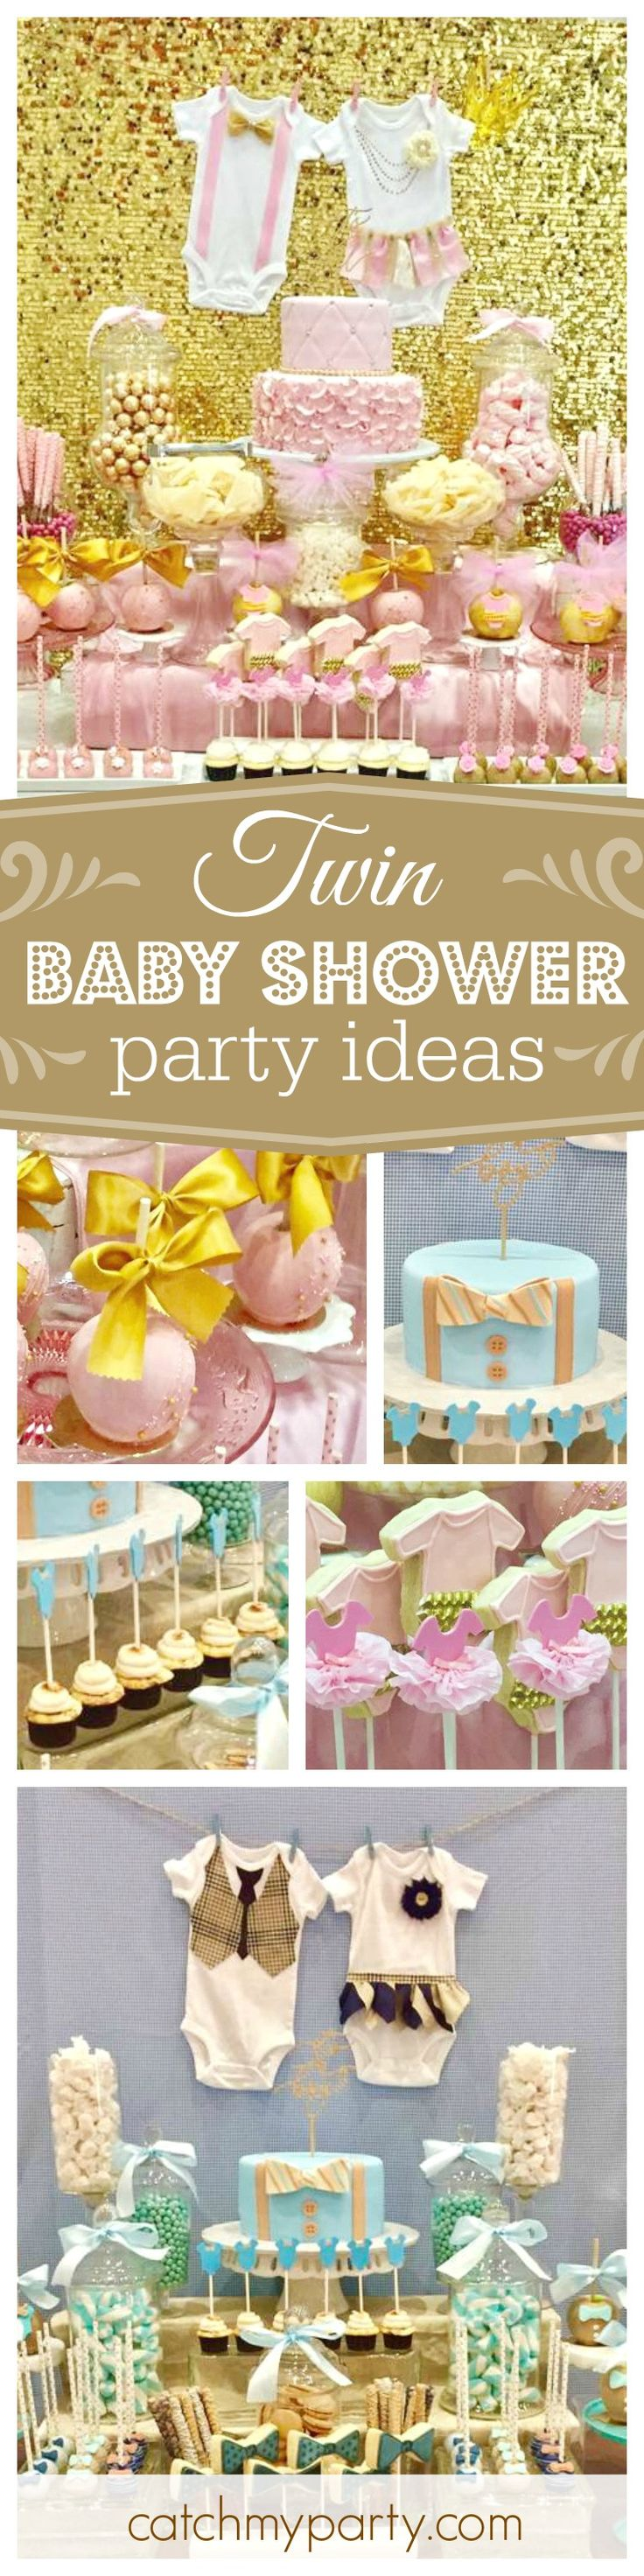 1169 best Baby Shower for dual images on Pinterest